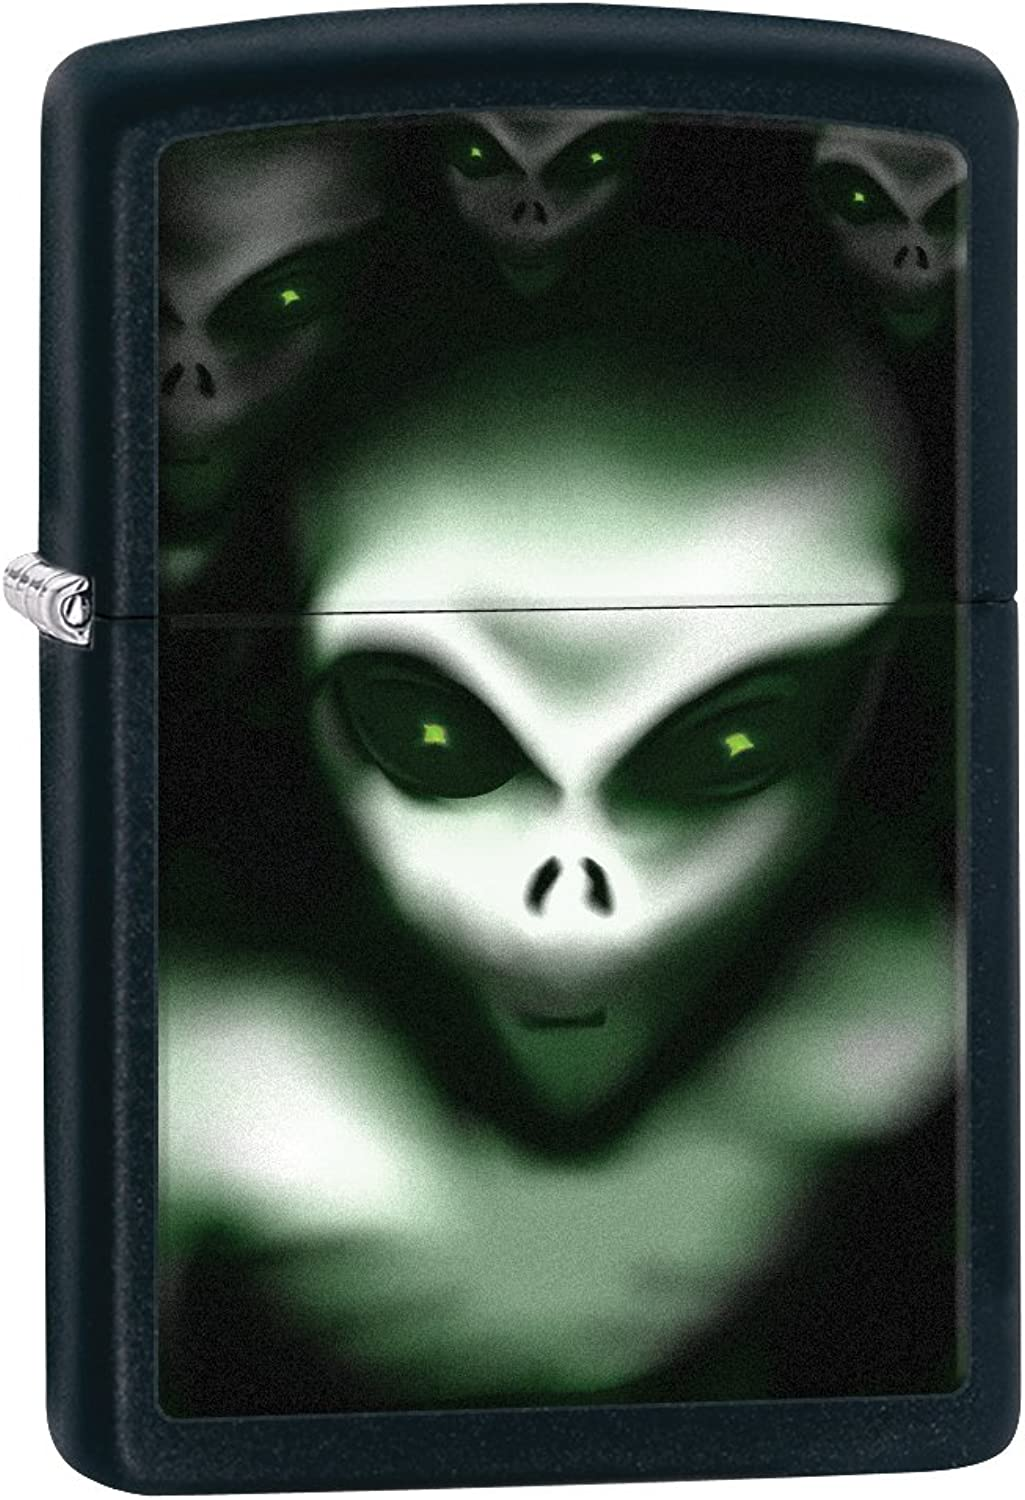 Zippo Scary Alien Pocket Lighter, Black Matte